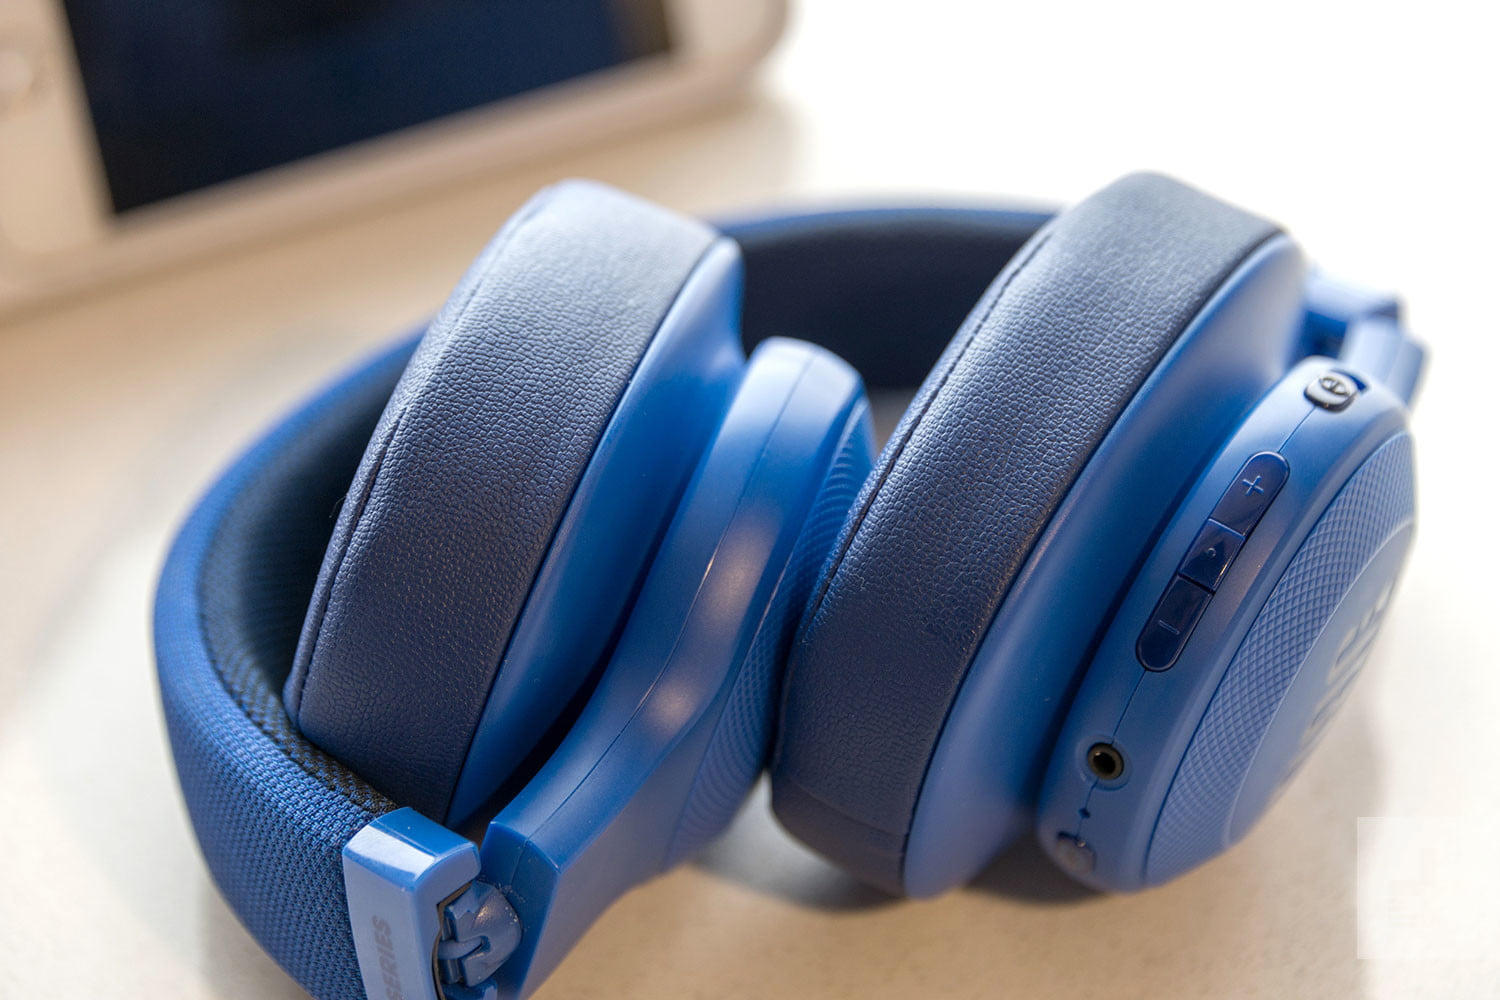 Walmart has booming discounts up to $80 on Sony and JBL wireless headphones